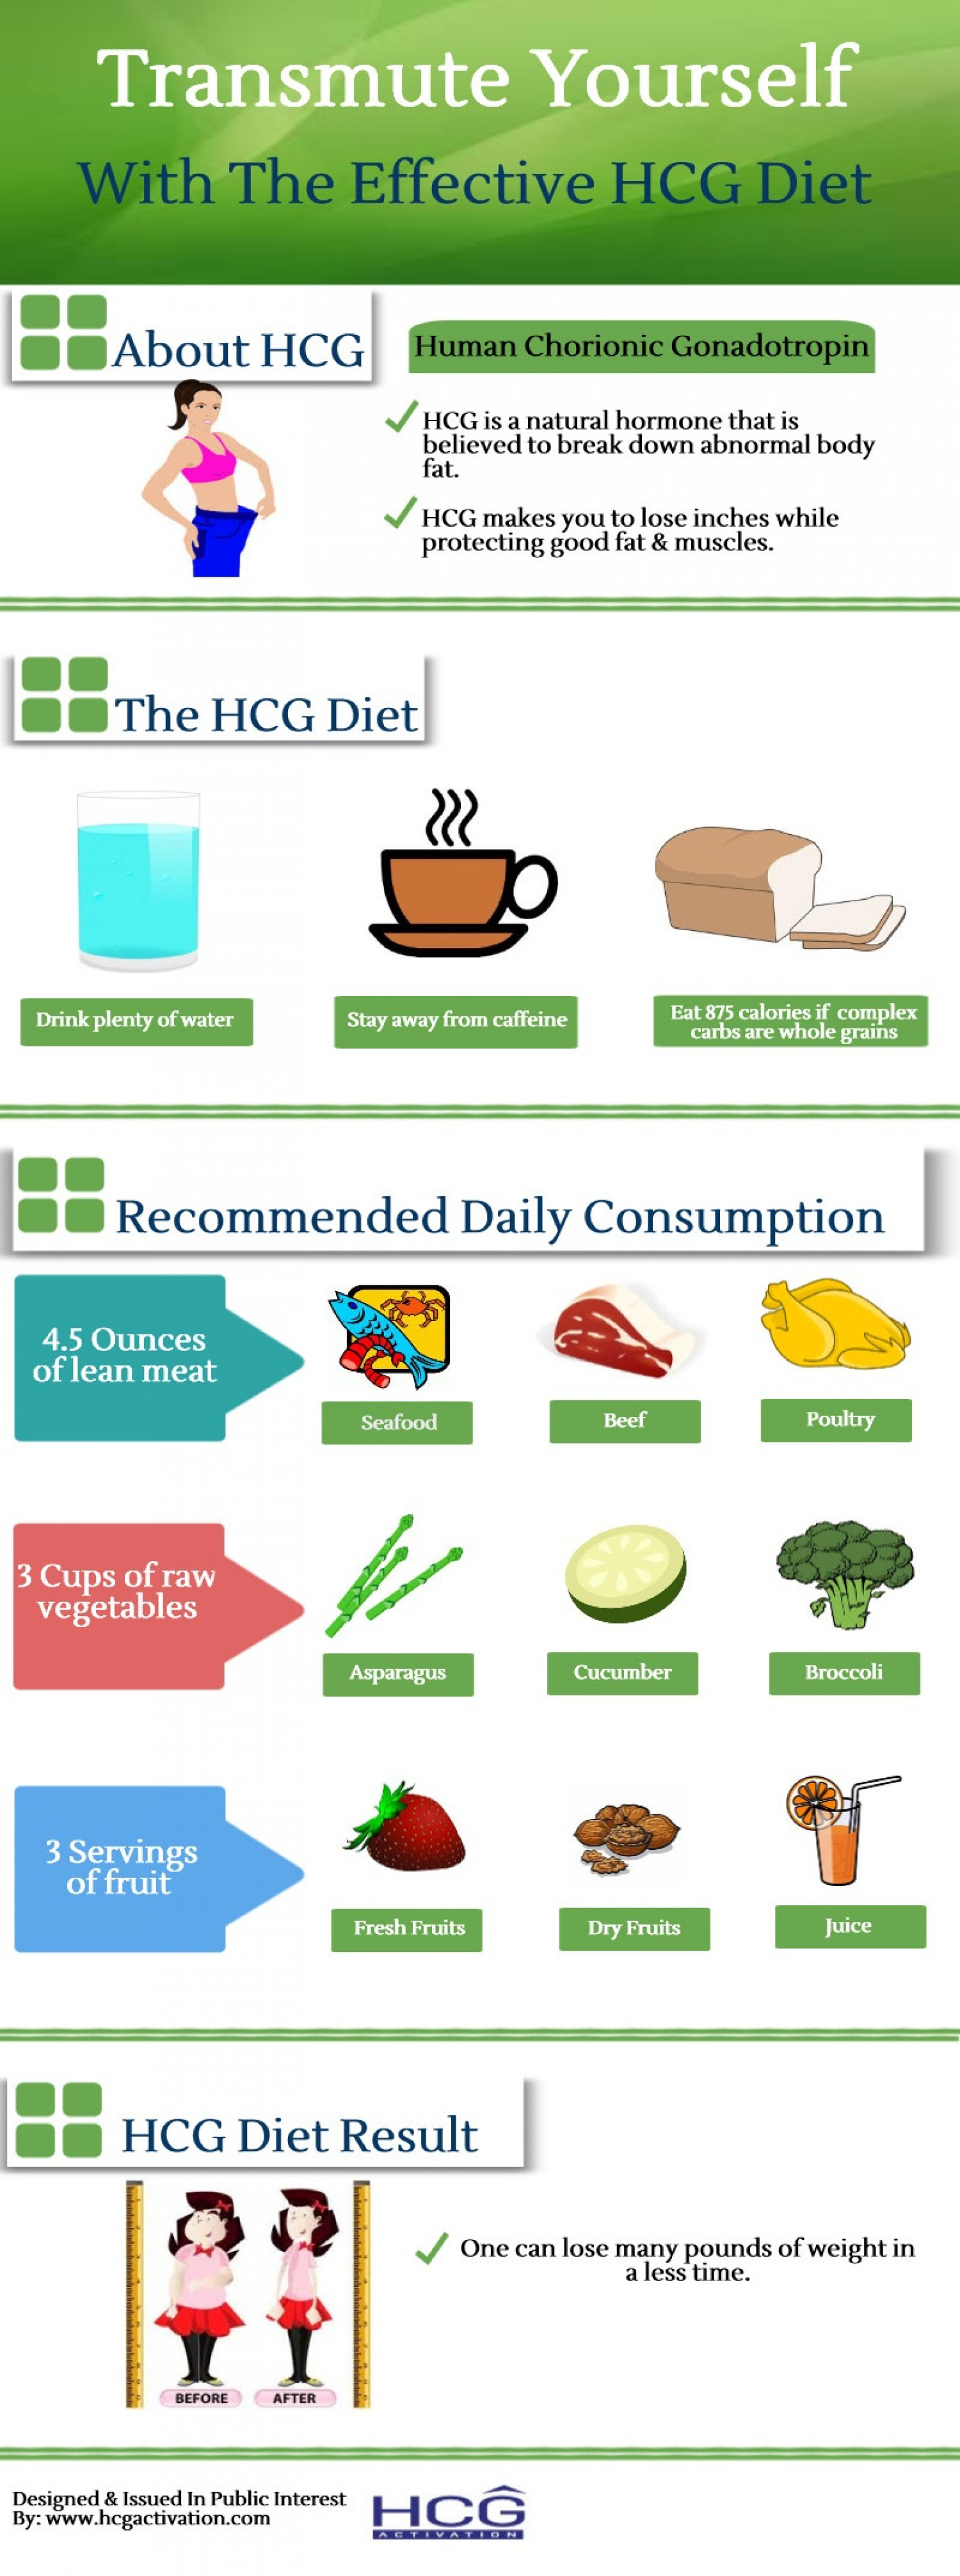 Transmute Yourself With The Effective HCG Diet Infographic